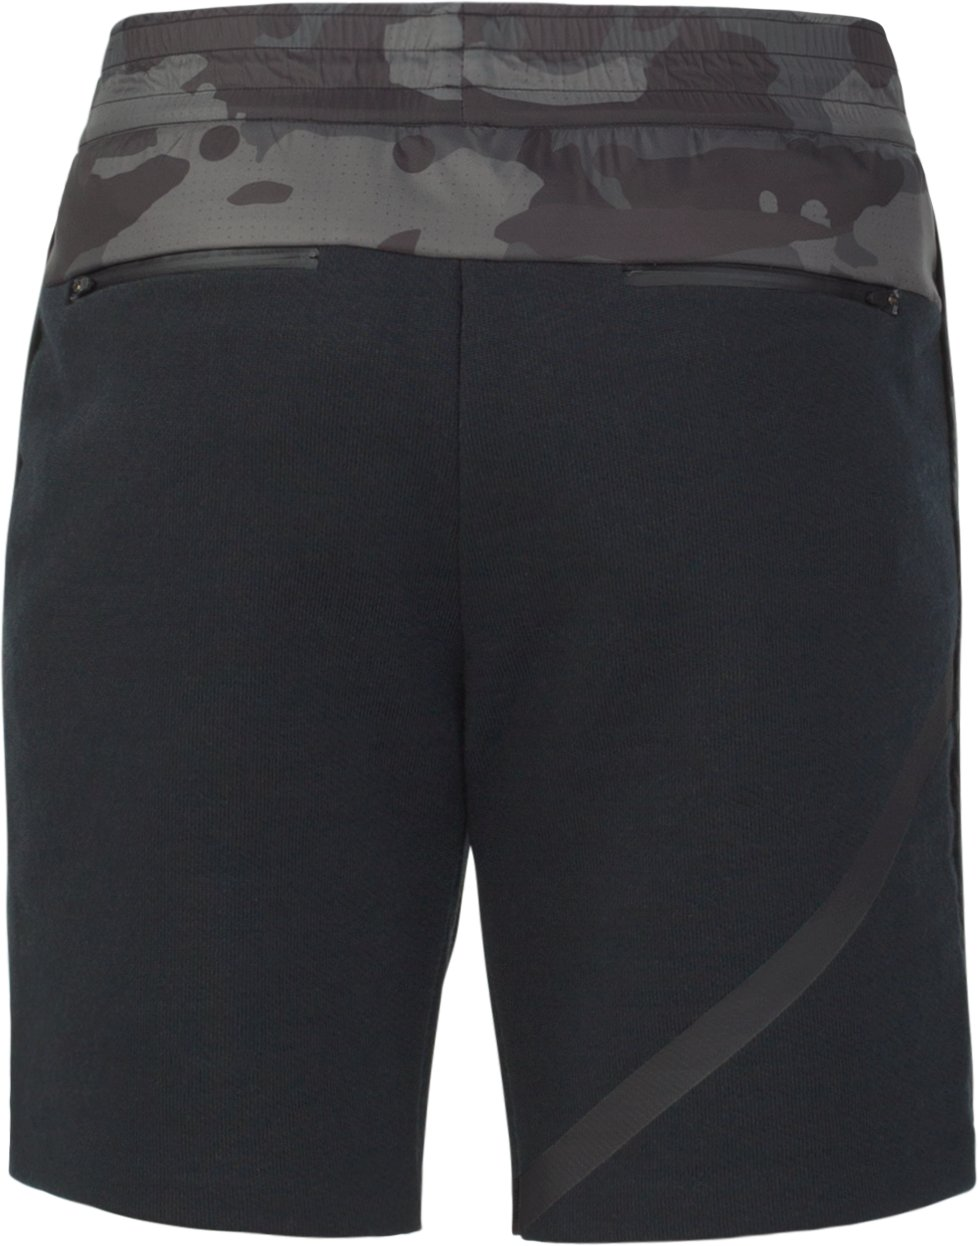 Men's UAS Pivot Terry Shorts, Black , undefined